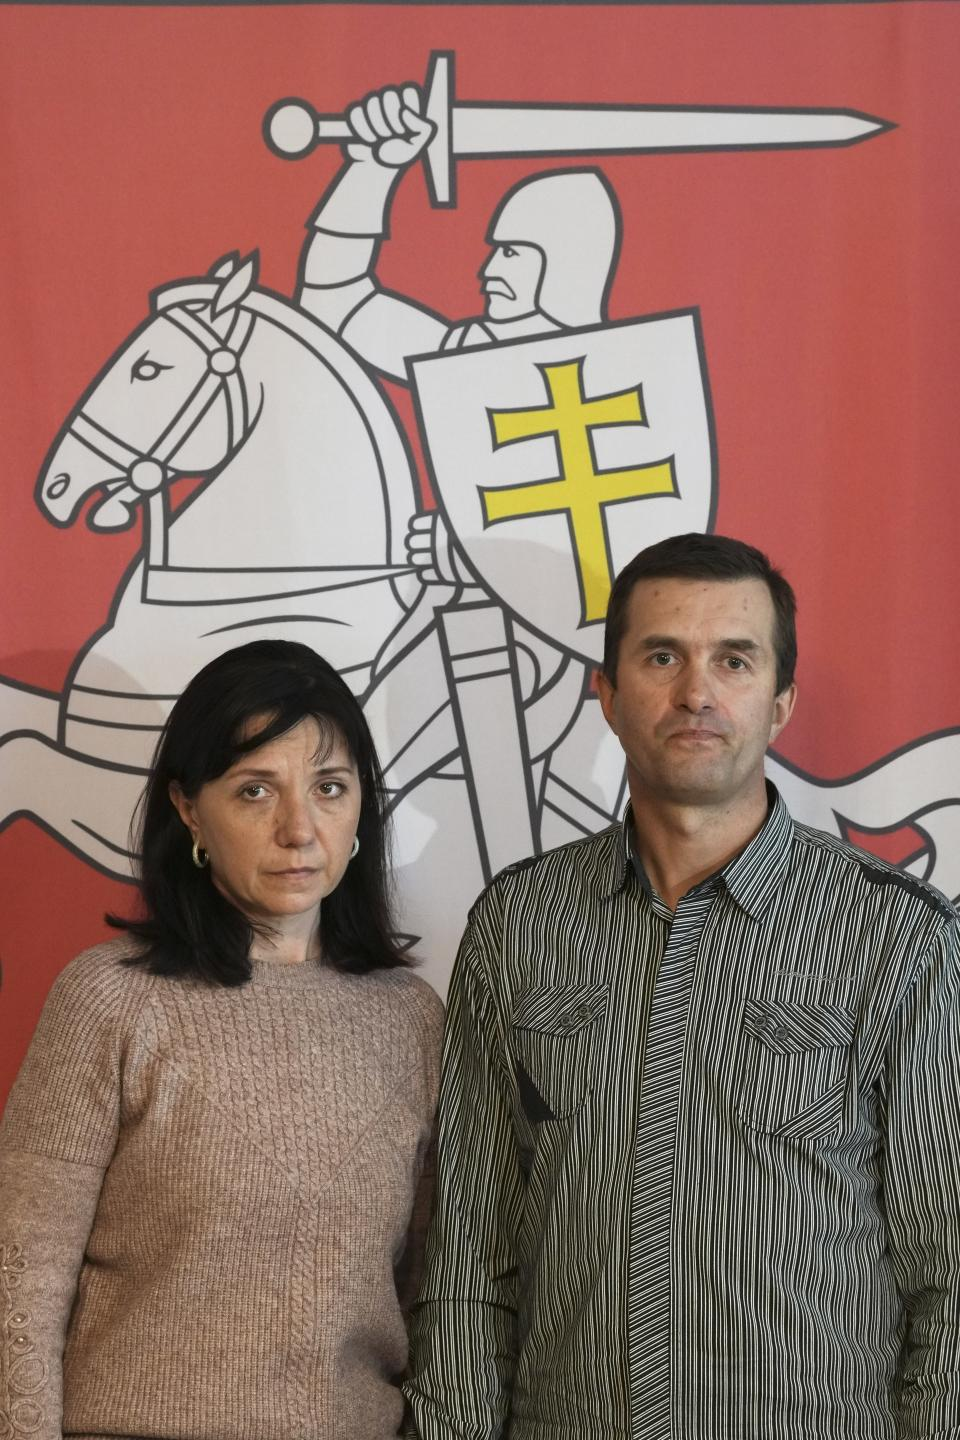 """FILE - In this May 27, 2021, file photo, Natalia Pratasevich, left, and Dzmitry Pratasevich, the parents of dissident journalist Raman Pratasevich, pose in front of an old Belarusian national emblem after a news conference in Warsaw, Poland. The journalist was arrested in Minsk on Sunday, May 23, 2021, after Belarusian flight controllers told a Ryanair jetliner he was on to land in Minsk, citing a bomb threat. """"I am begging you, help me free my son!"""" said Natalia Pratasevich. (AP Photo/Czarek Sokolowski, File)"""